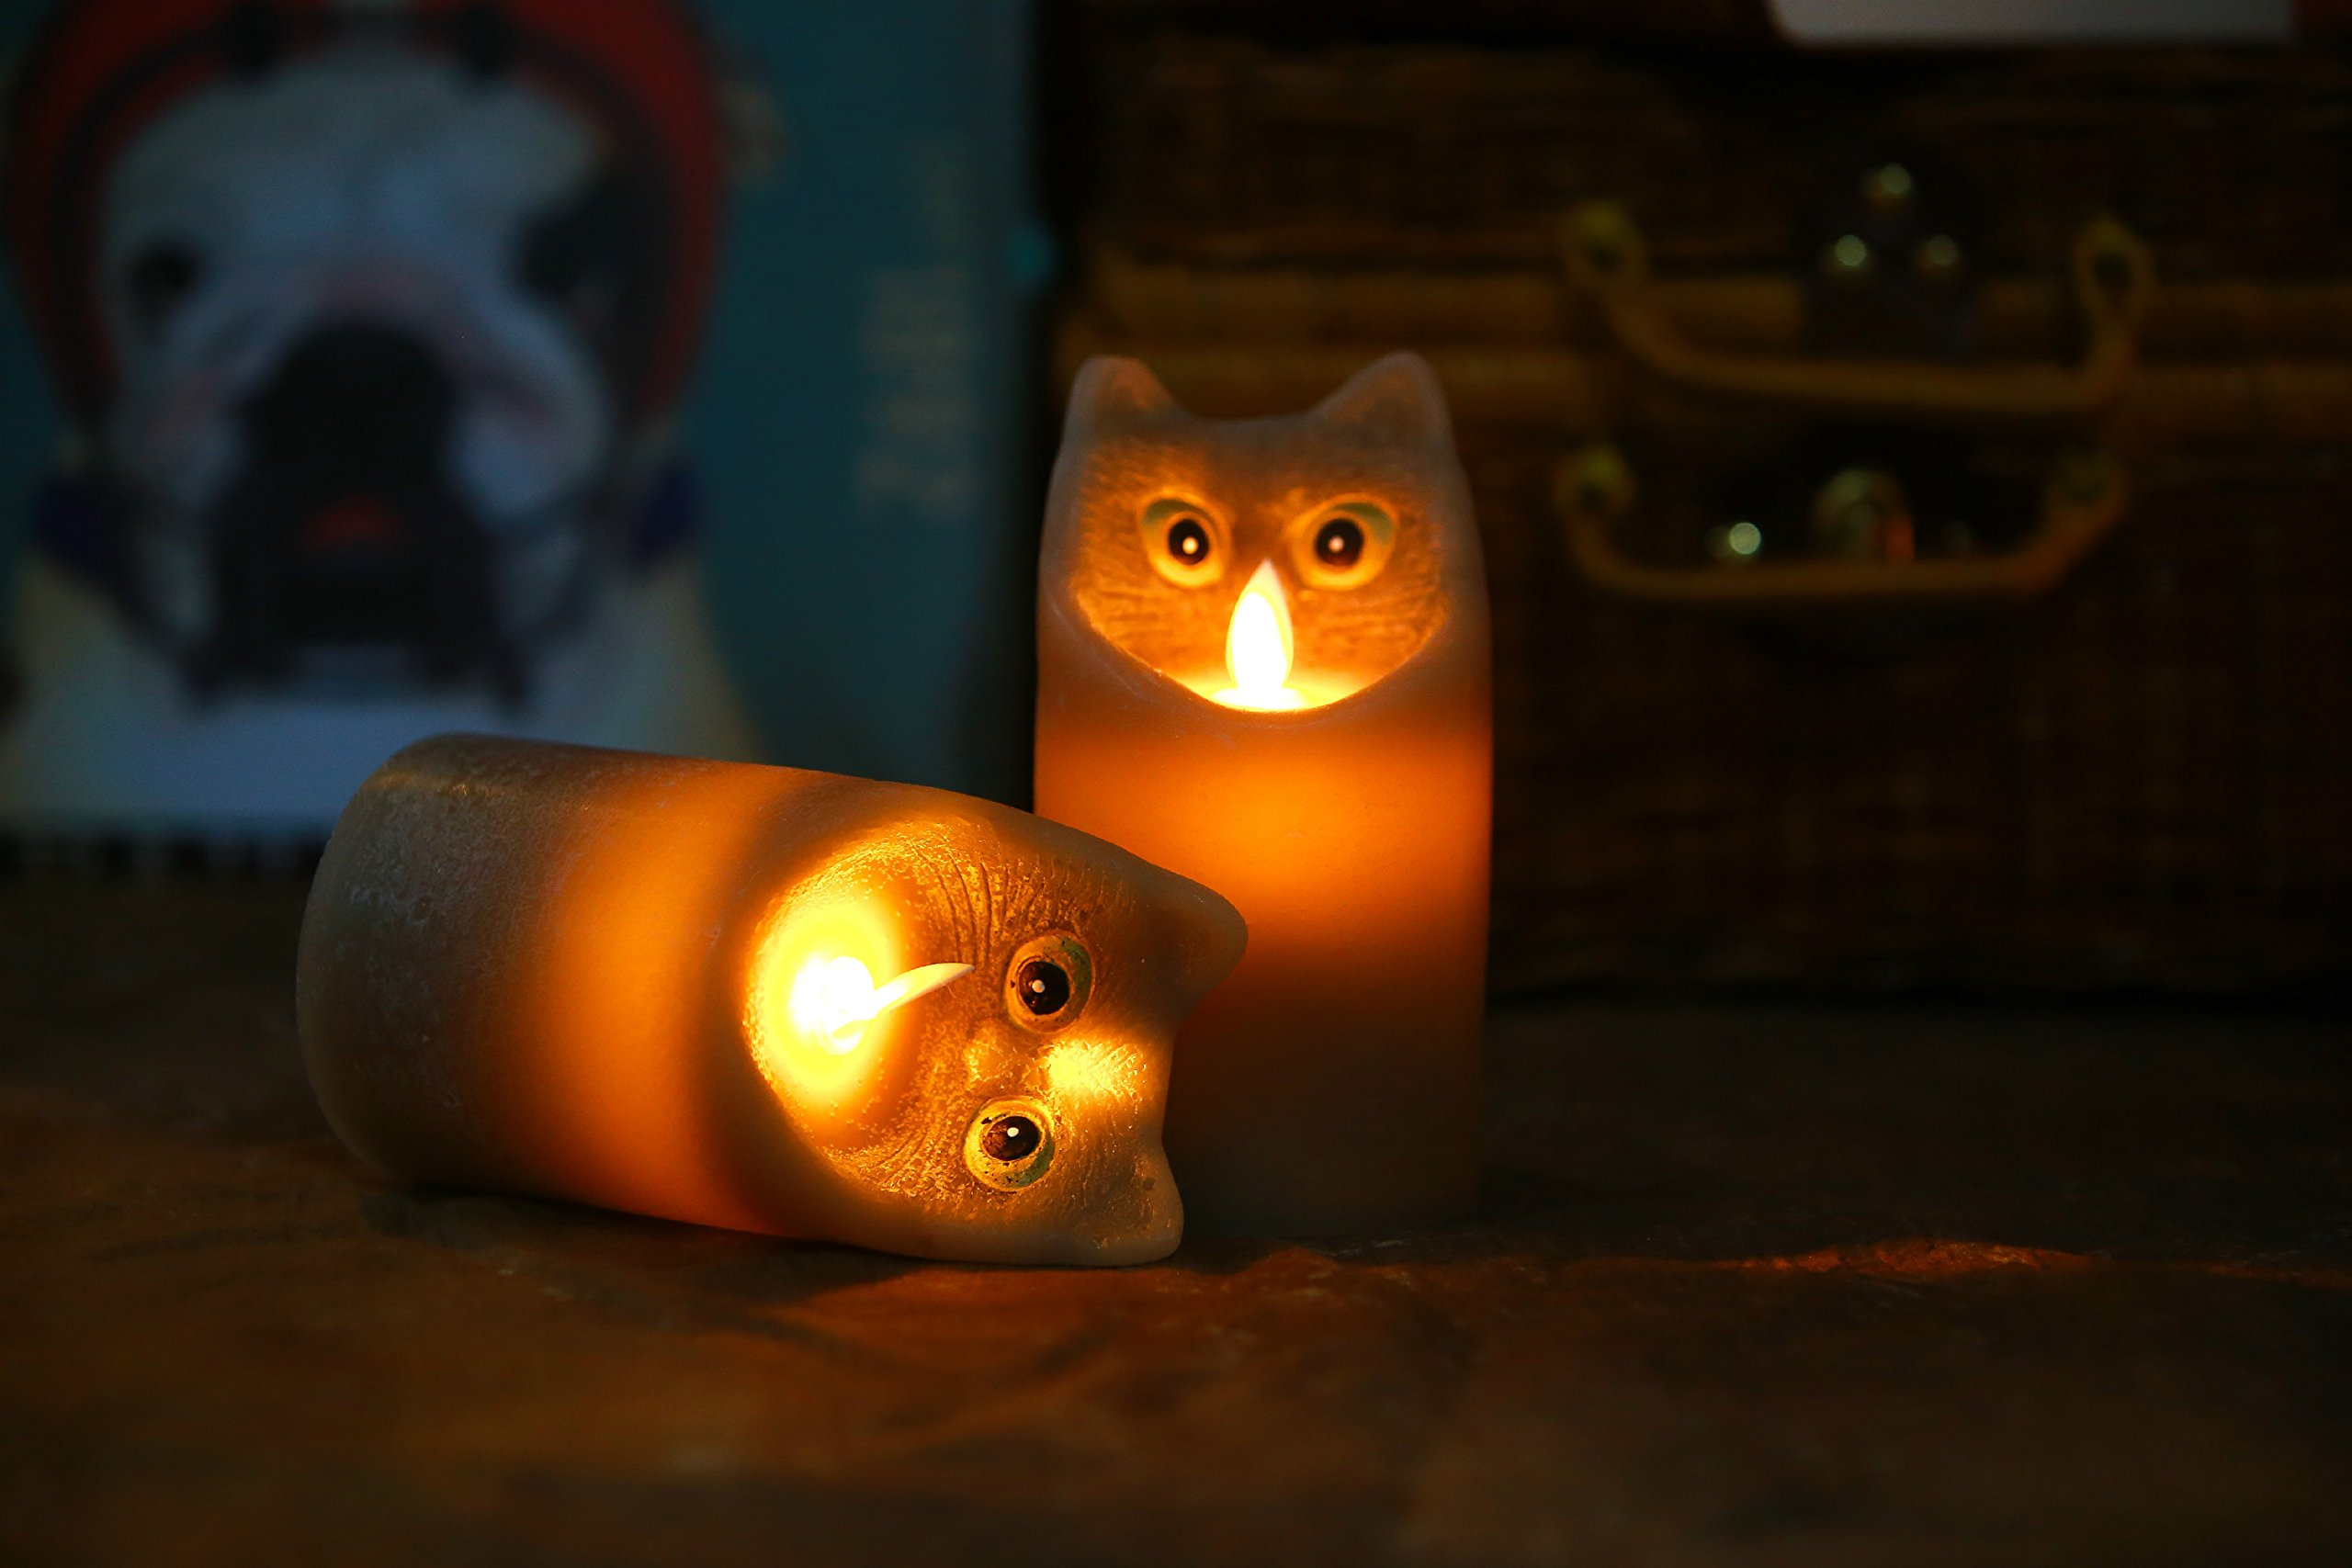 Kitch Aroma Marble Grey Color Cartoon Cat Flameless Candle with Timer For Birthday Gifts,Dia 3'' x H6'',Pack of 2 by Kitch Aroma (Image #6)